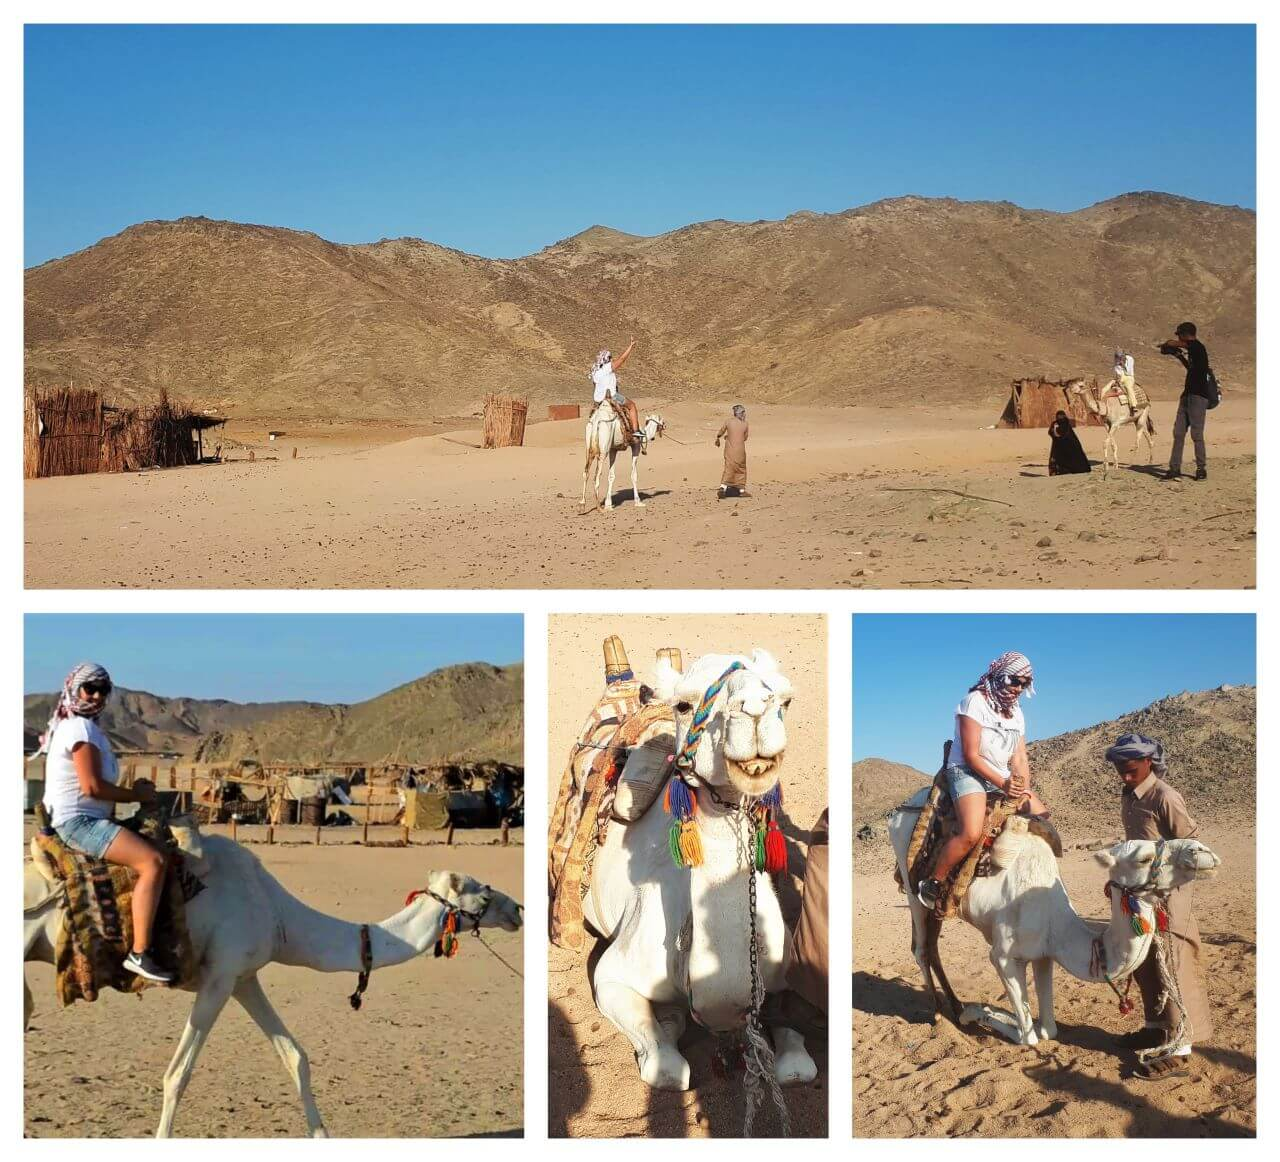 Riding camels, Hurghada Bedouin village